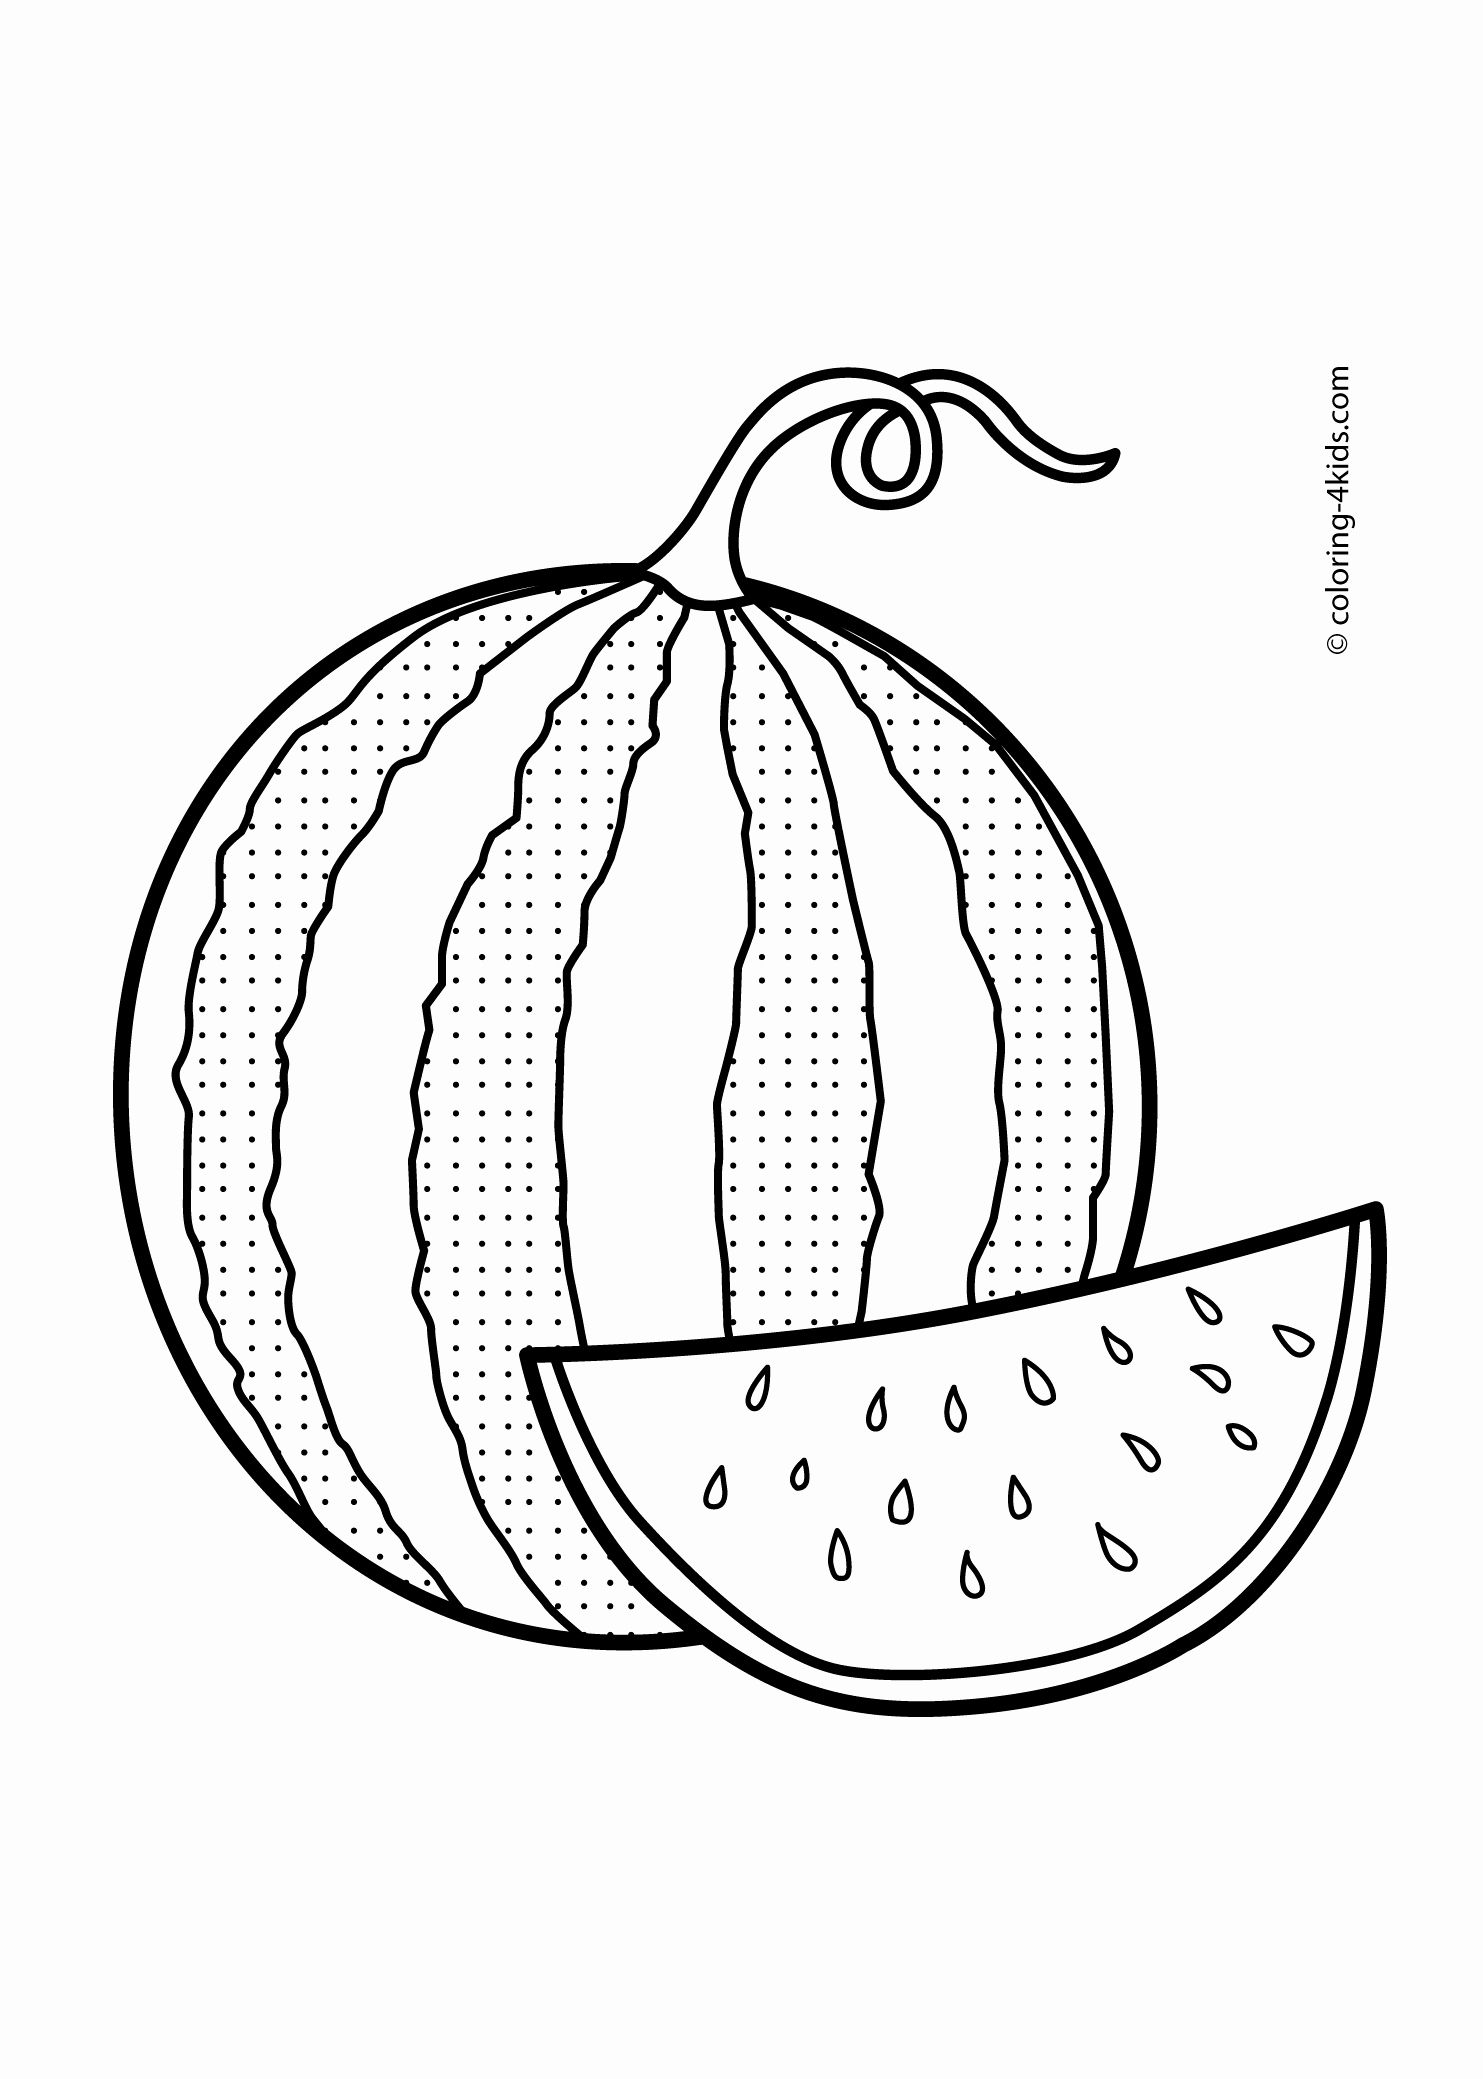 Coloring Pages Fruits And Veggies Awesome Fruit Coloring Pages Watermelon Cake Fruit Coloring Pages Coloring Pages For Kids Coloring Pages